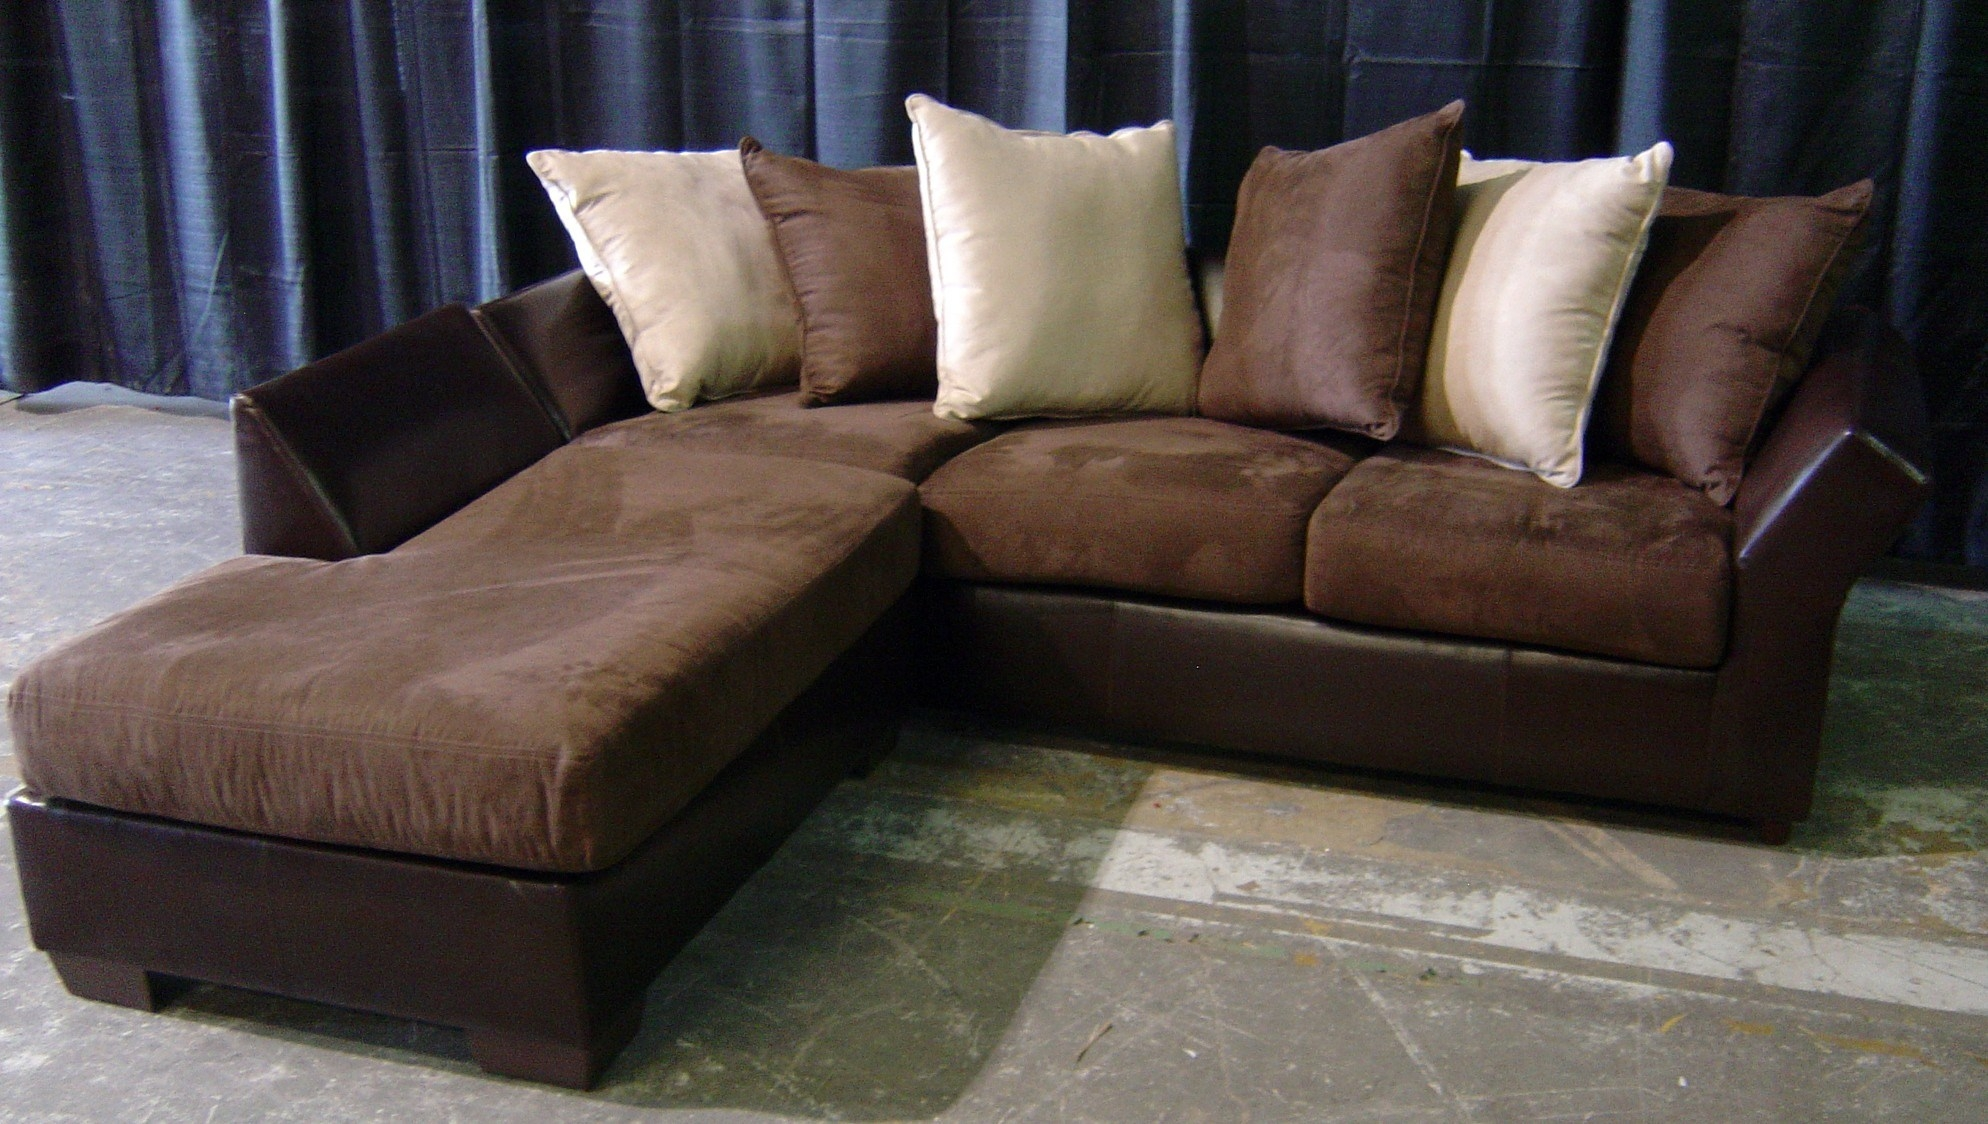 Furniture Brown Leather Sectional Couches Craigslist Missoula Pertaining To Craigslist Sectional Sofa (View 4 of 15)